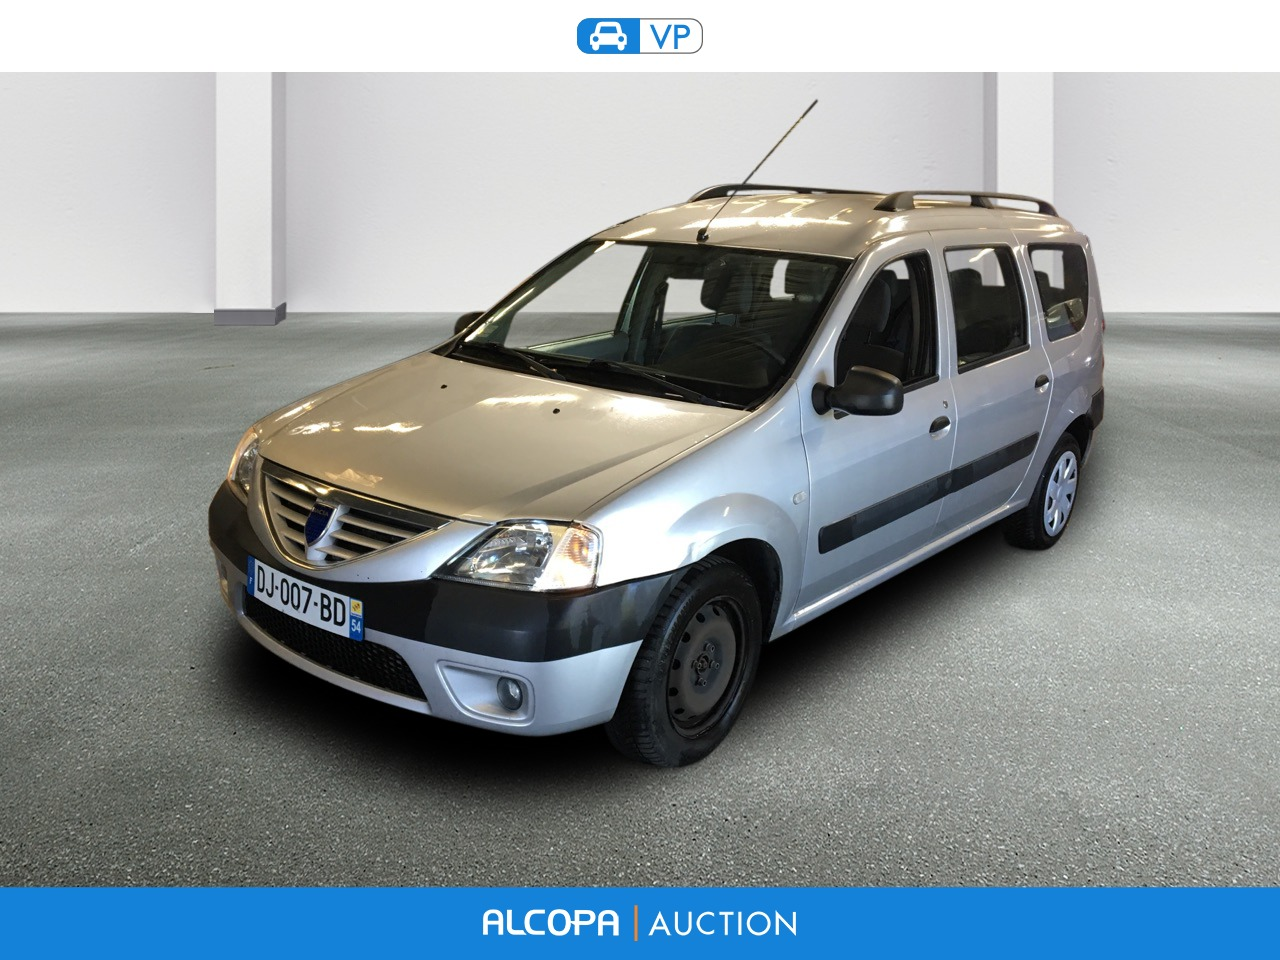 dacia logan mcv logan mcv 1 5 dci 85 7 places laur ate alcopa auction. Black Bedroom Furniture Sets. Home Design Ideas